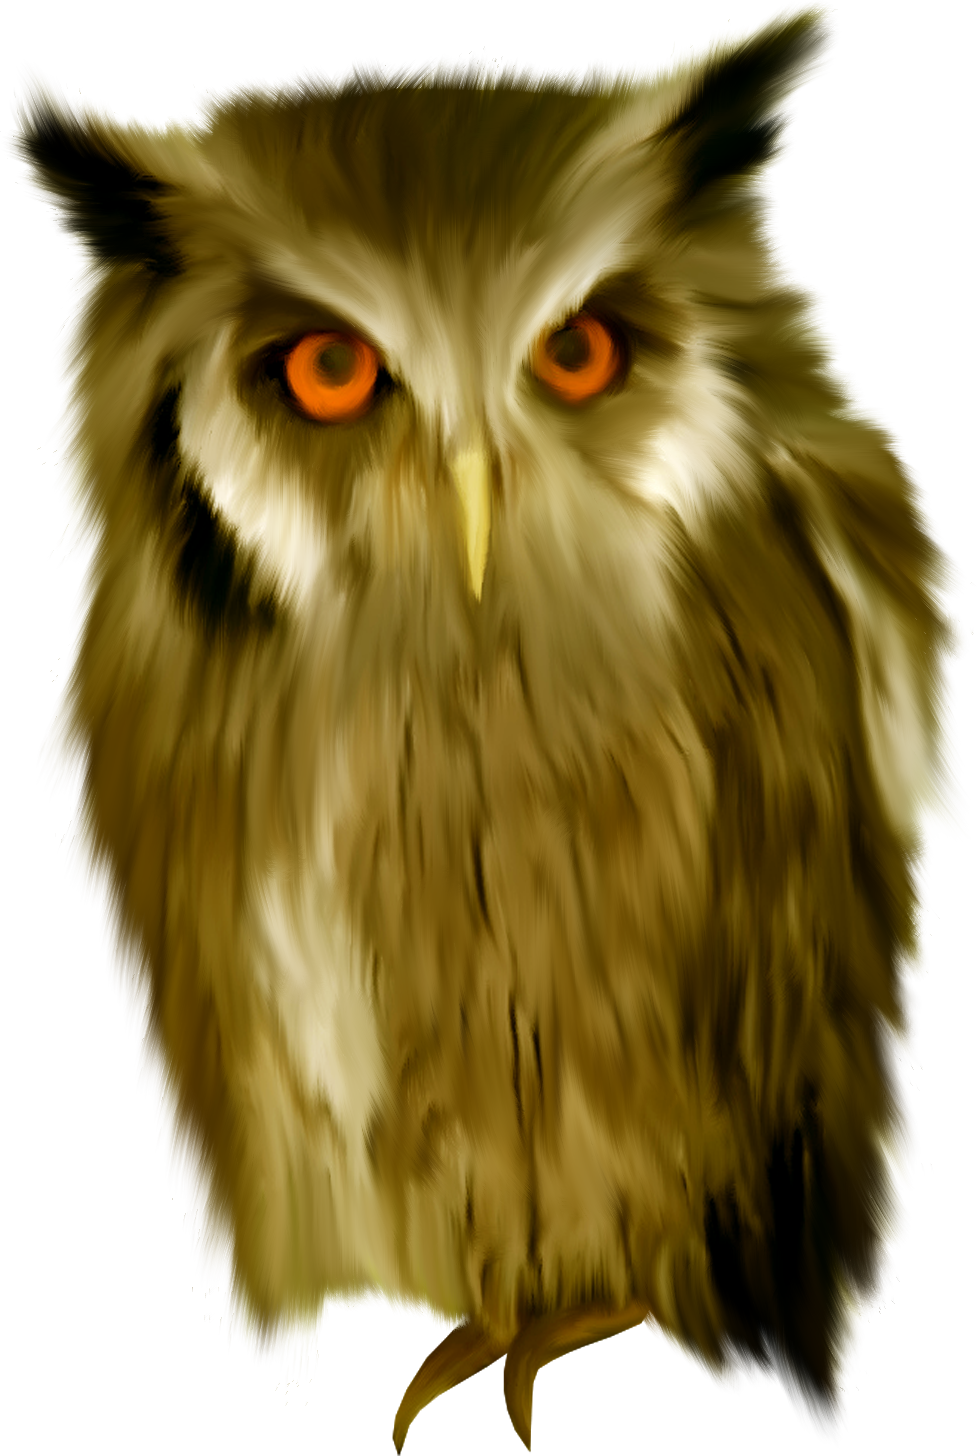 Computer Eye Glass: Owls Clipart Eye, Owls Eye Transparent FREE For Download